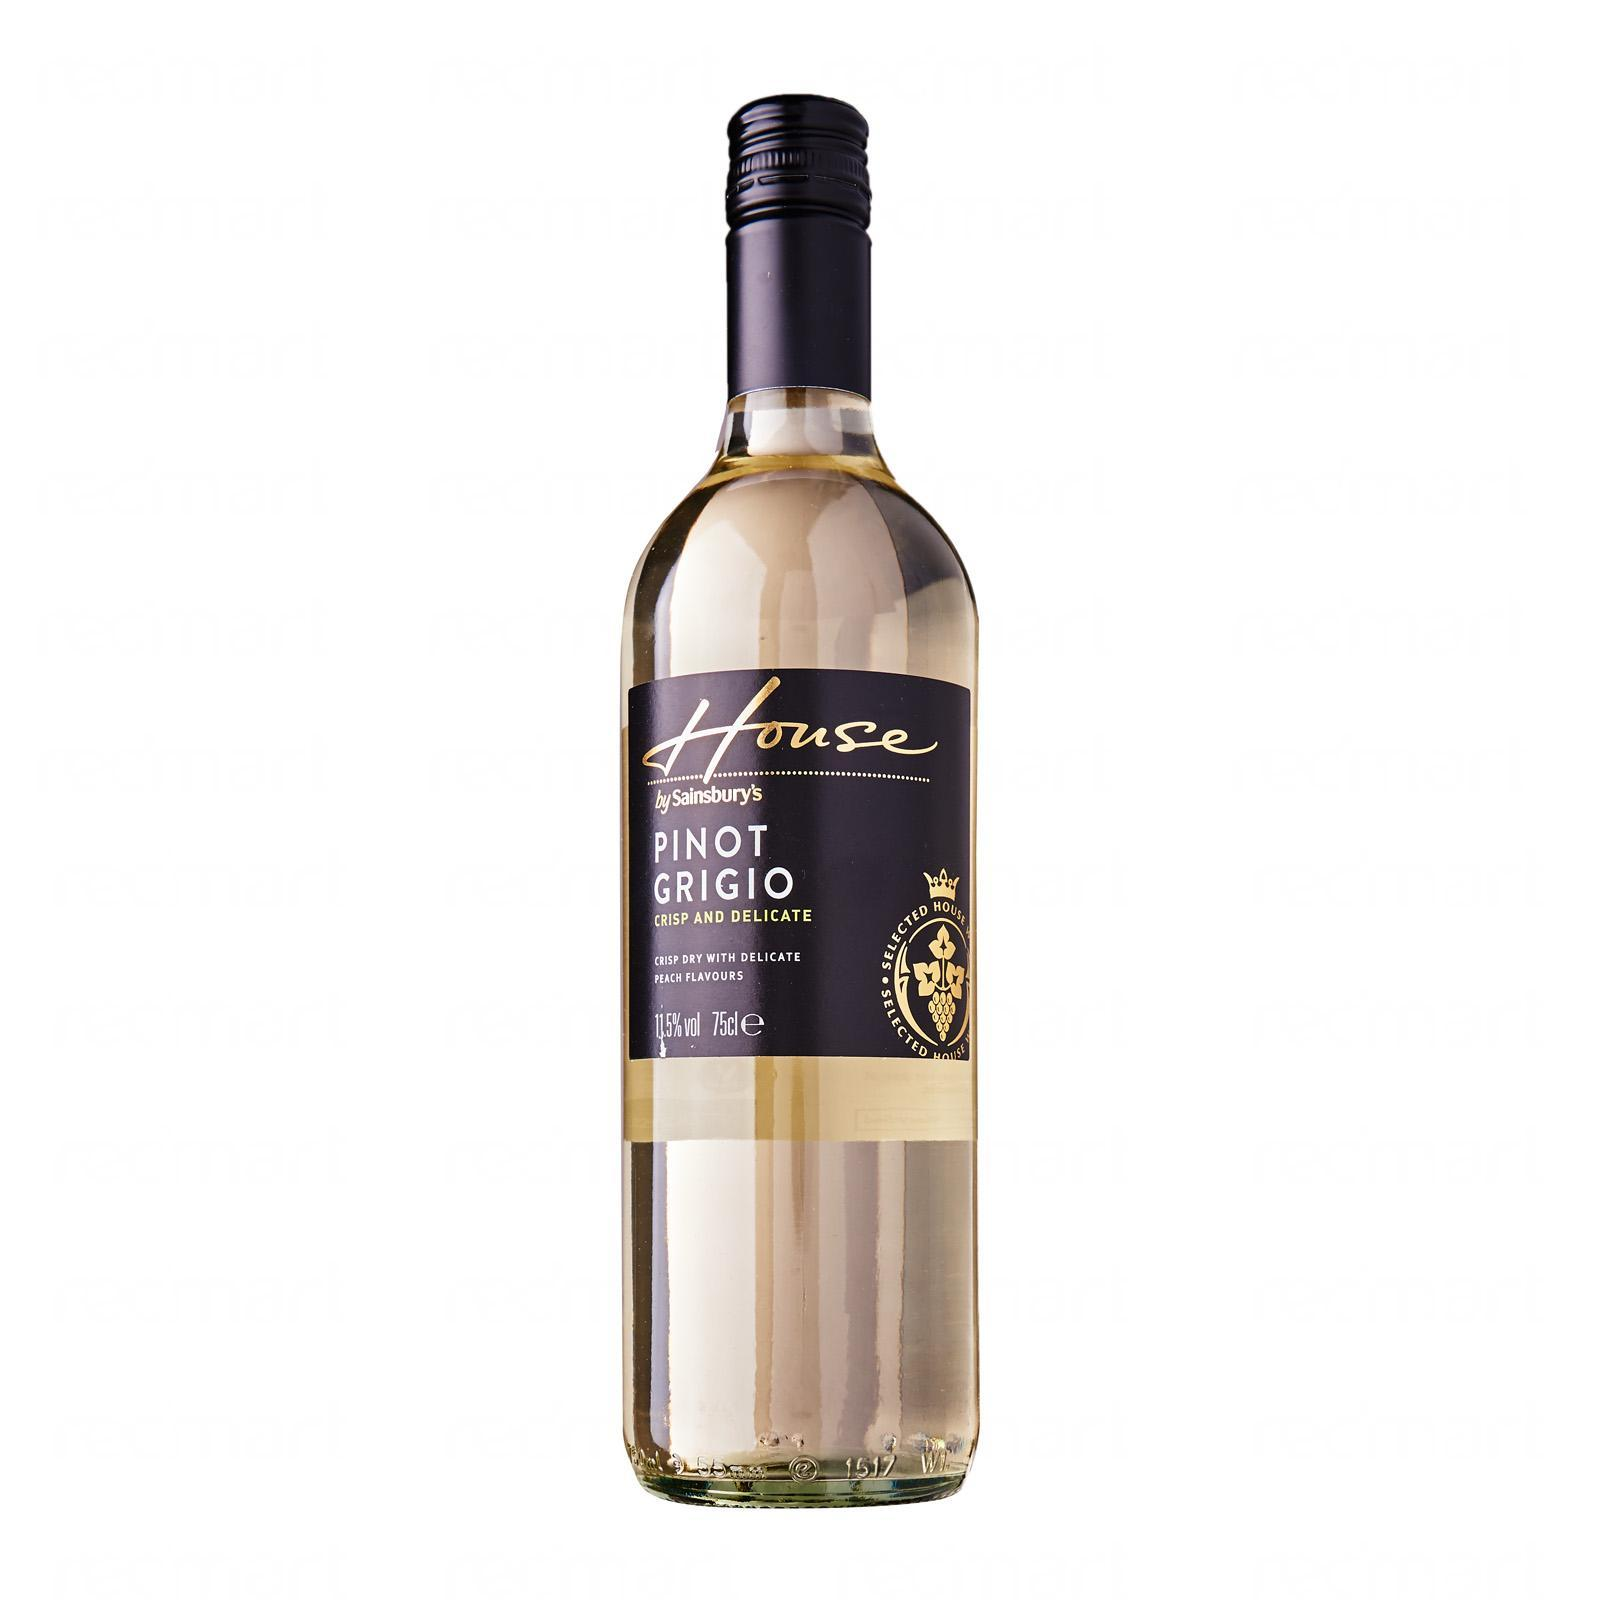 Sainsbury's House Pinot Grigio White Wine